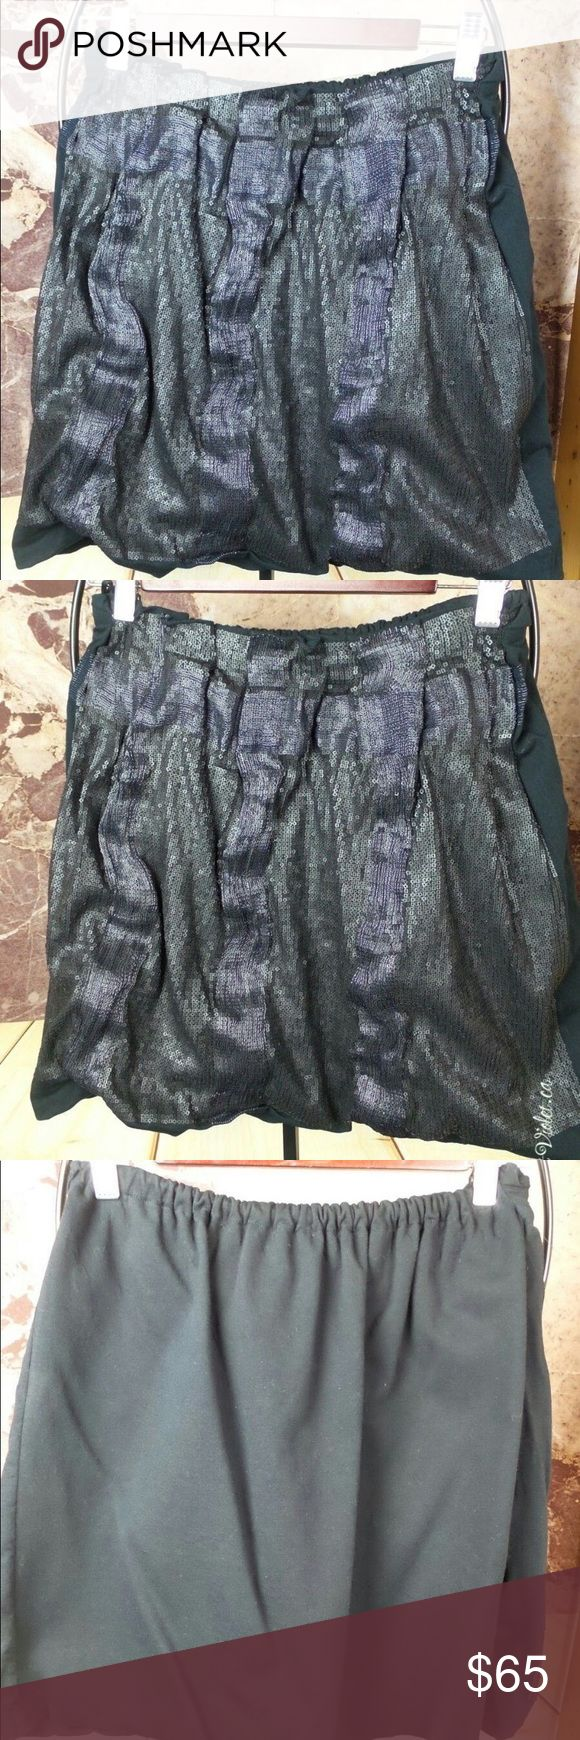 Prada Black Cotton Sequin Boned Bubble Skirt SZ S Prada Black Cotton Low Shine Sequin Lightly Boned Bubble Skirt SZ S Prada Skirts Mini